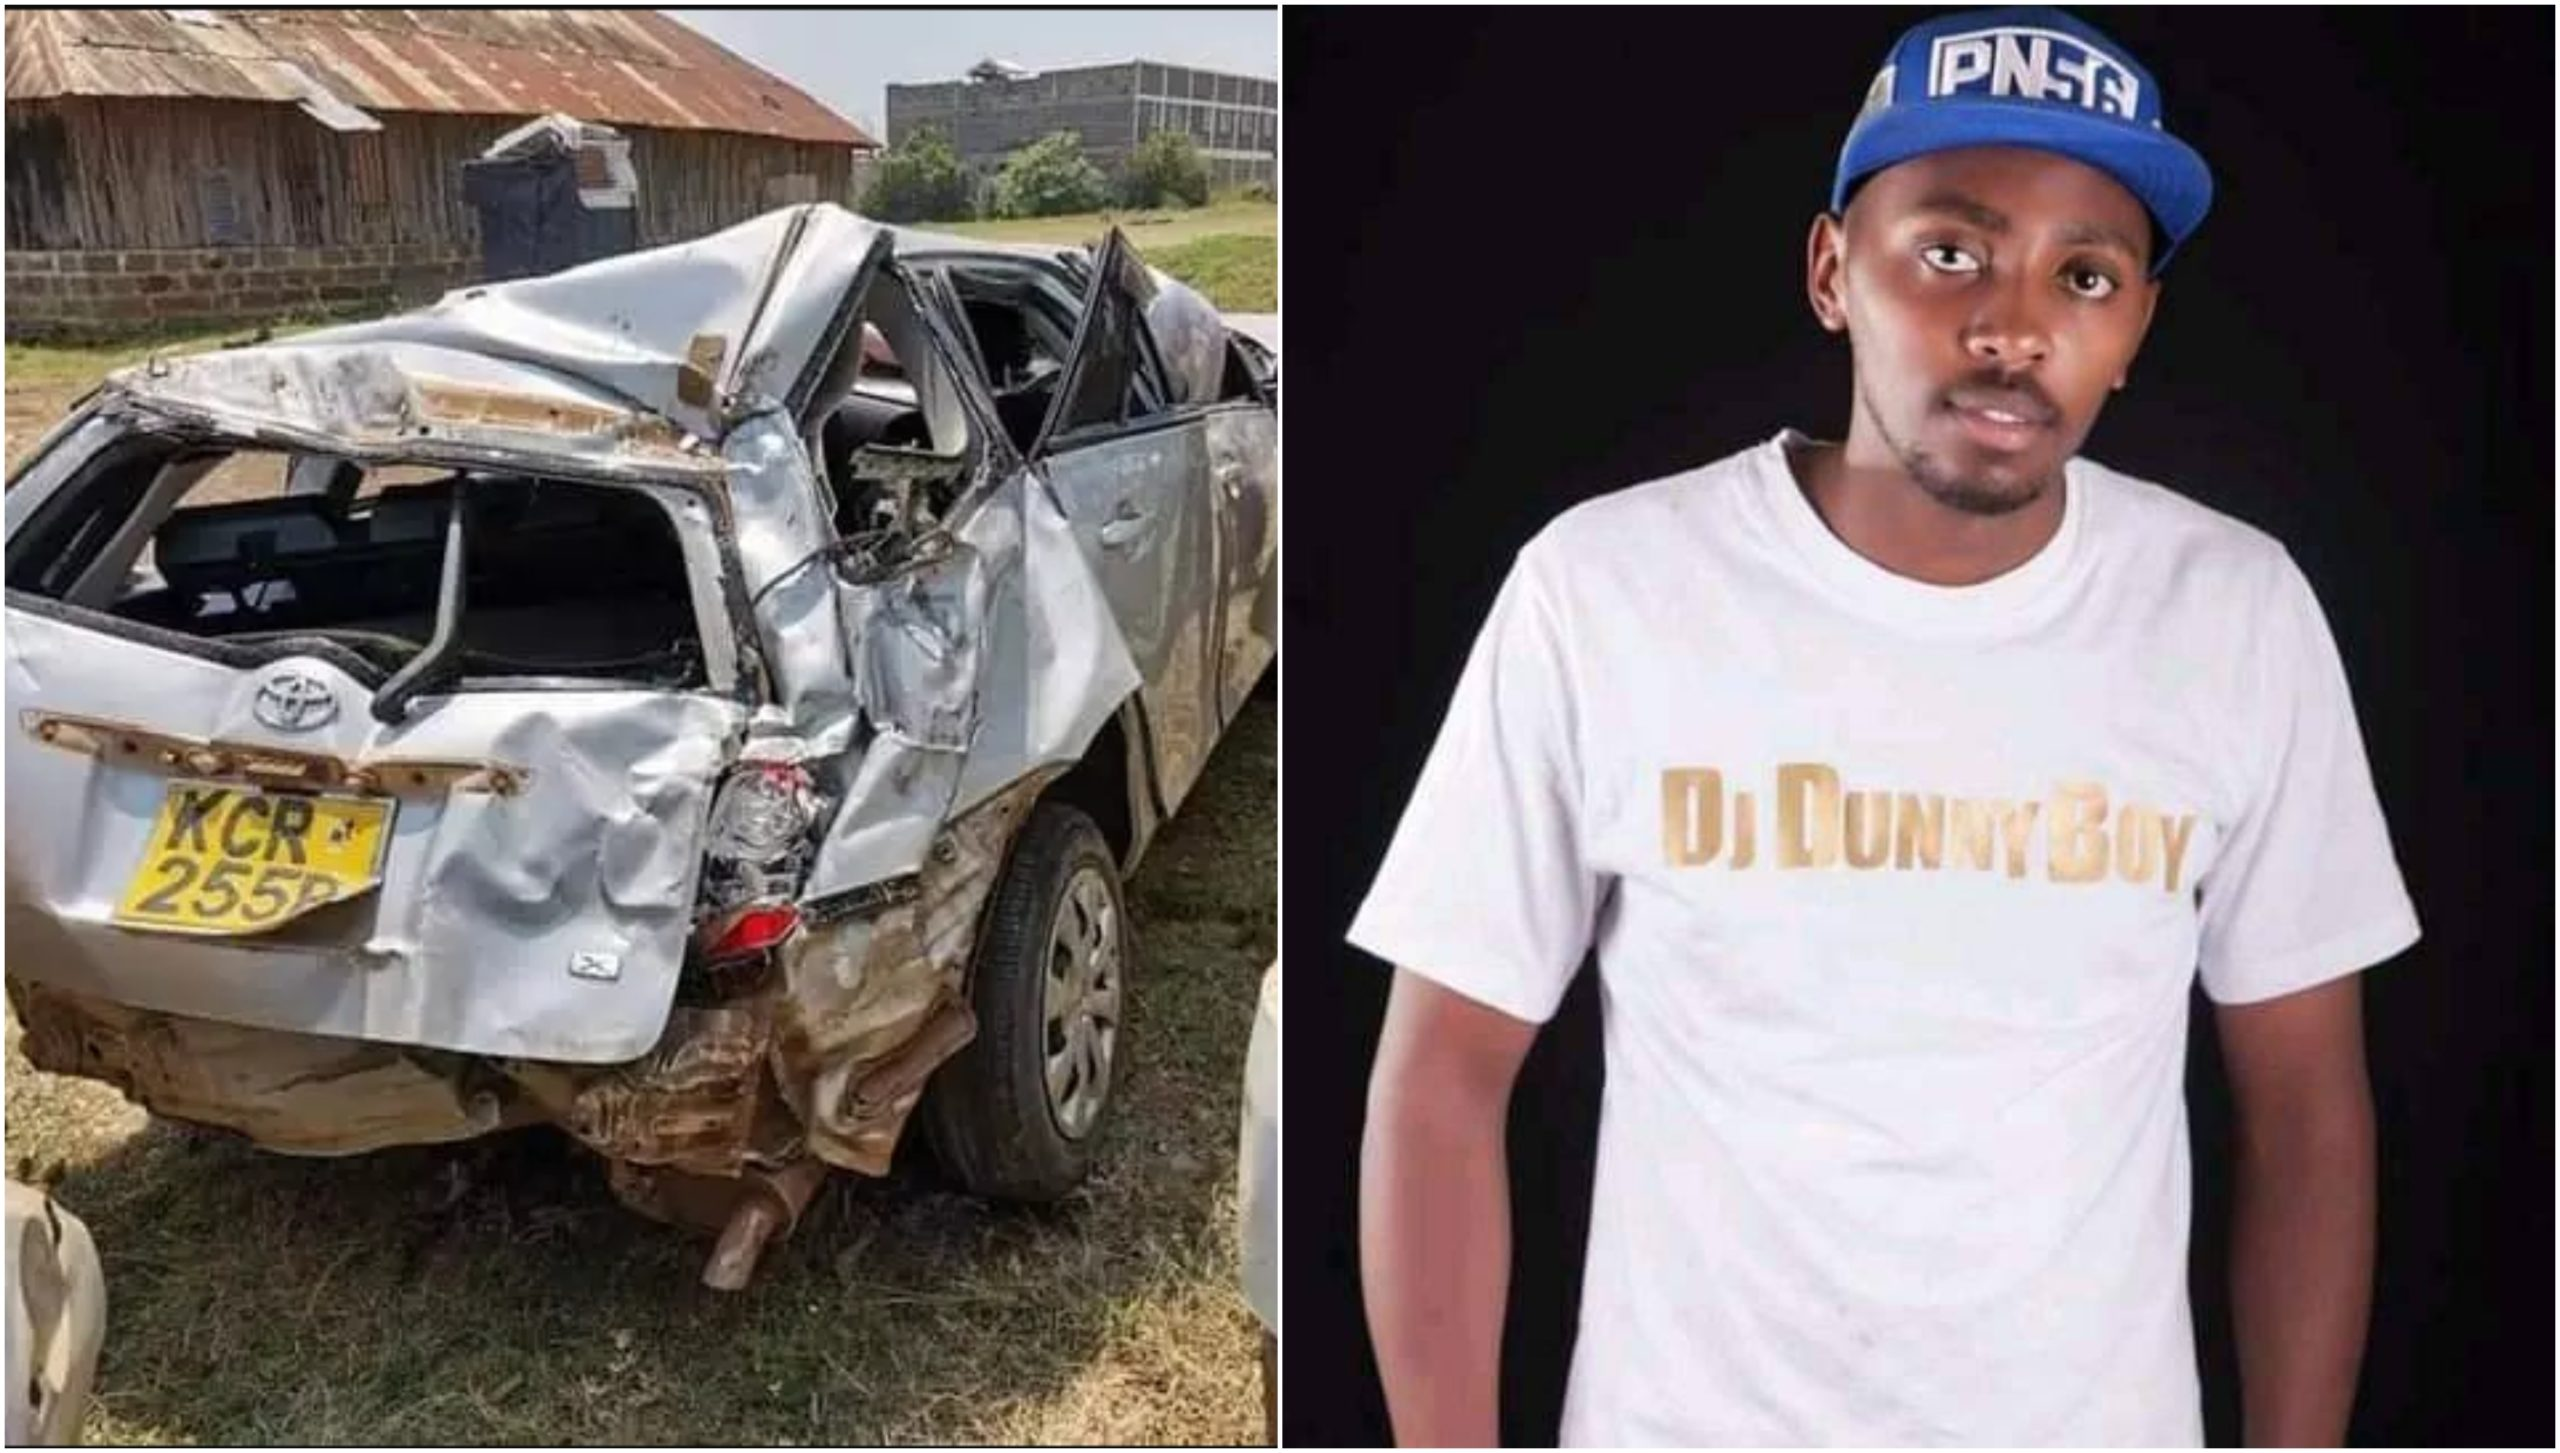 RIP! Popular Kenyan DJ dies in tragic road accident